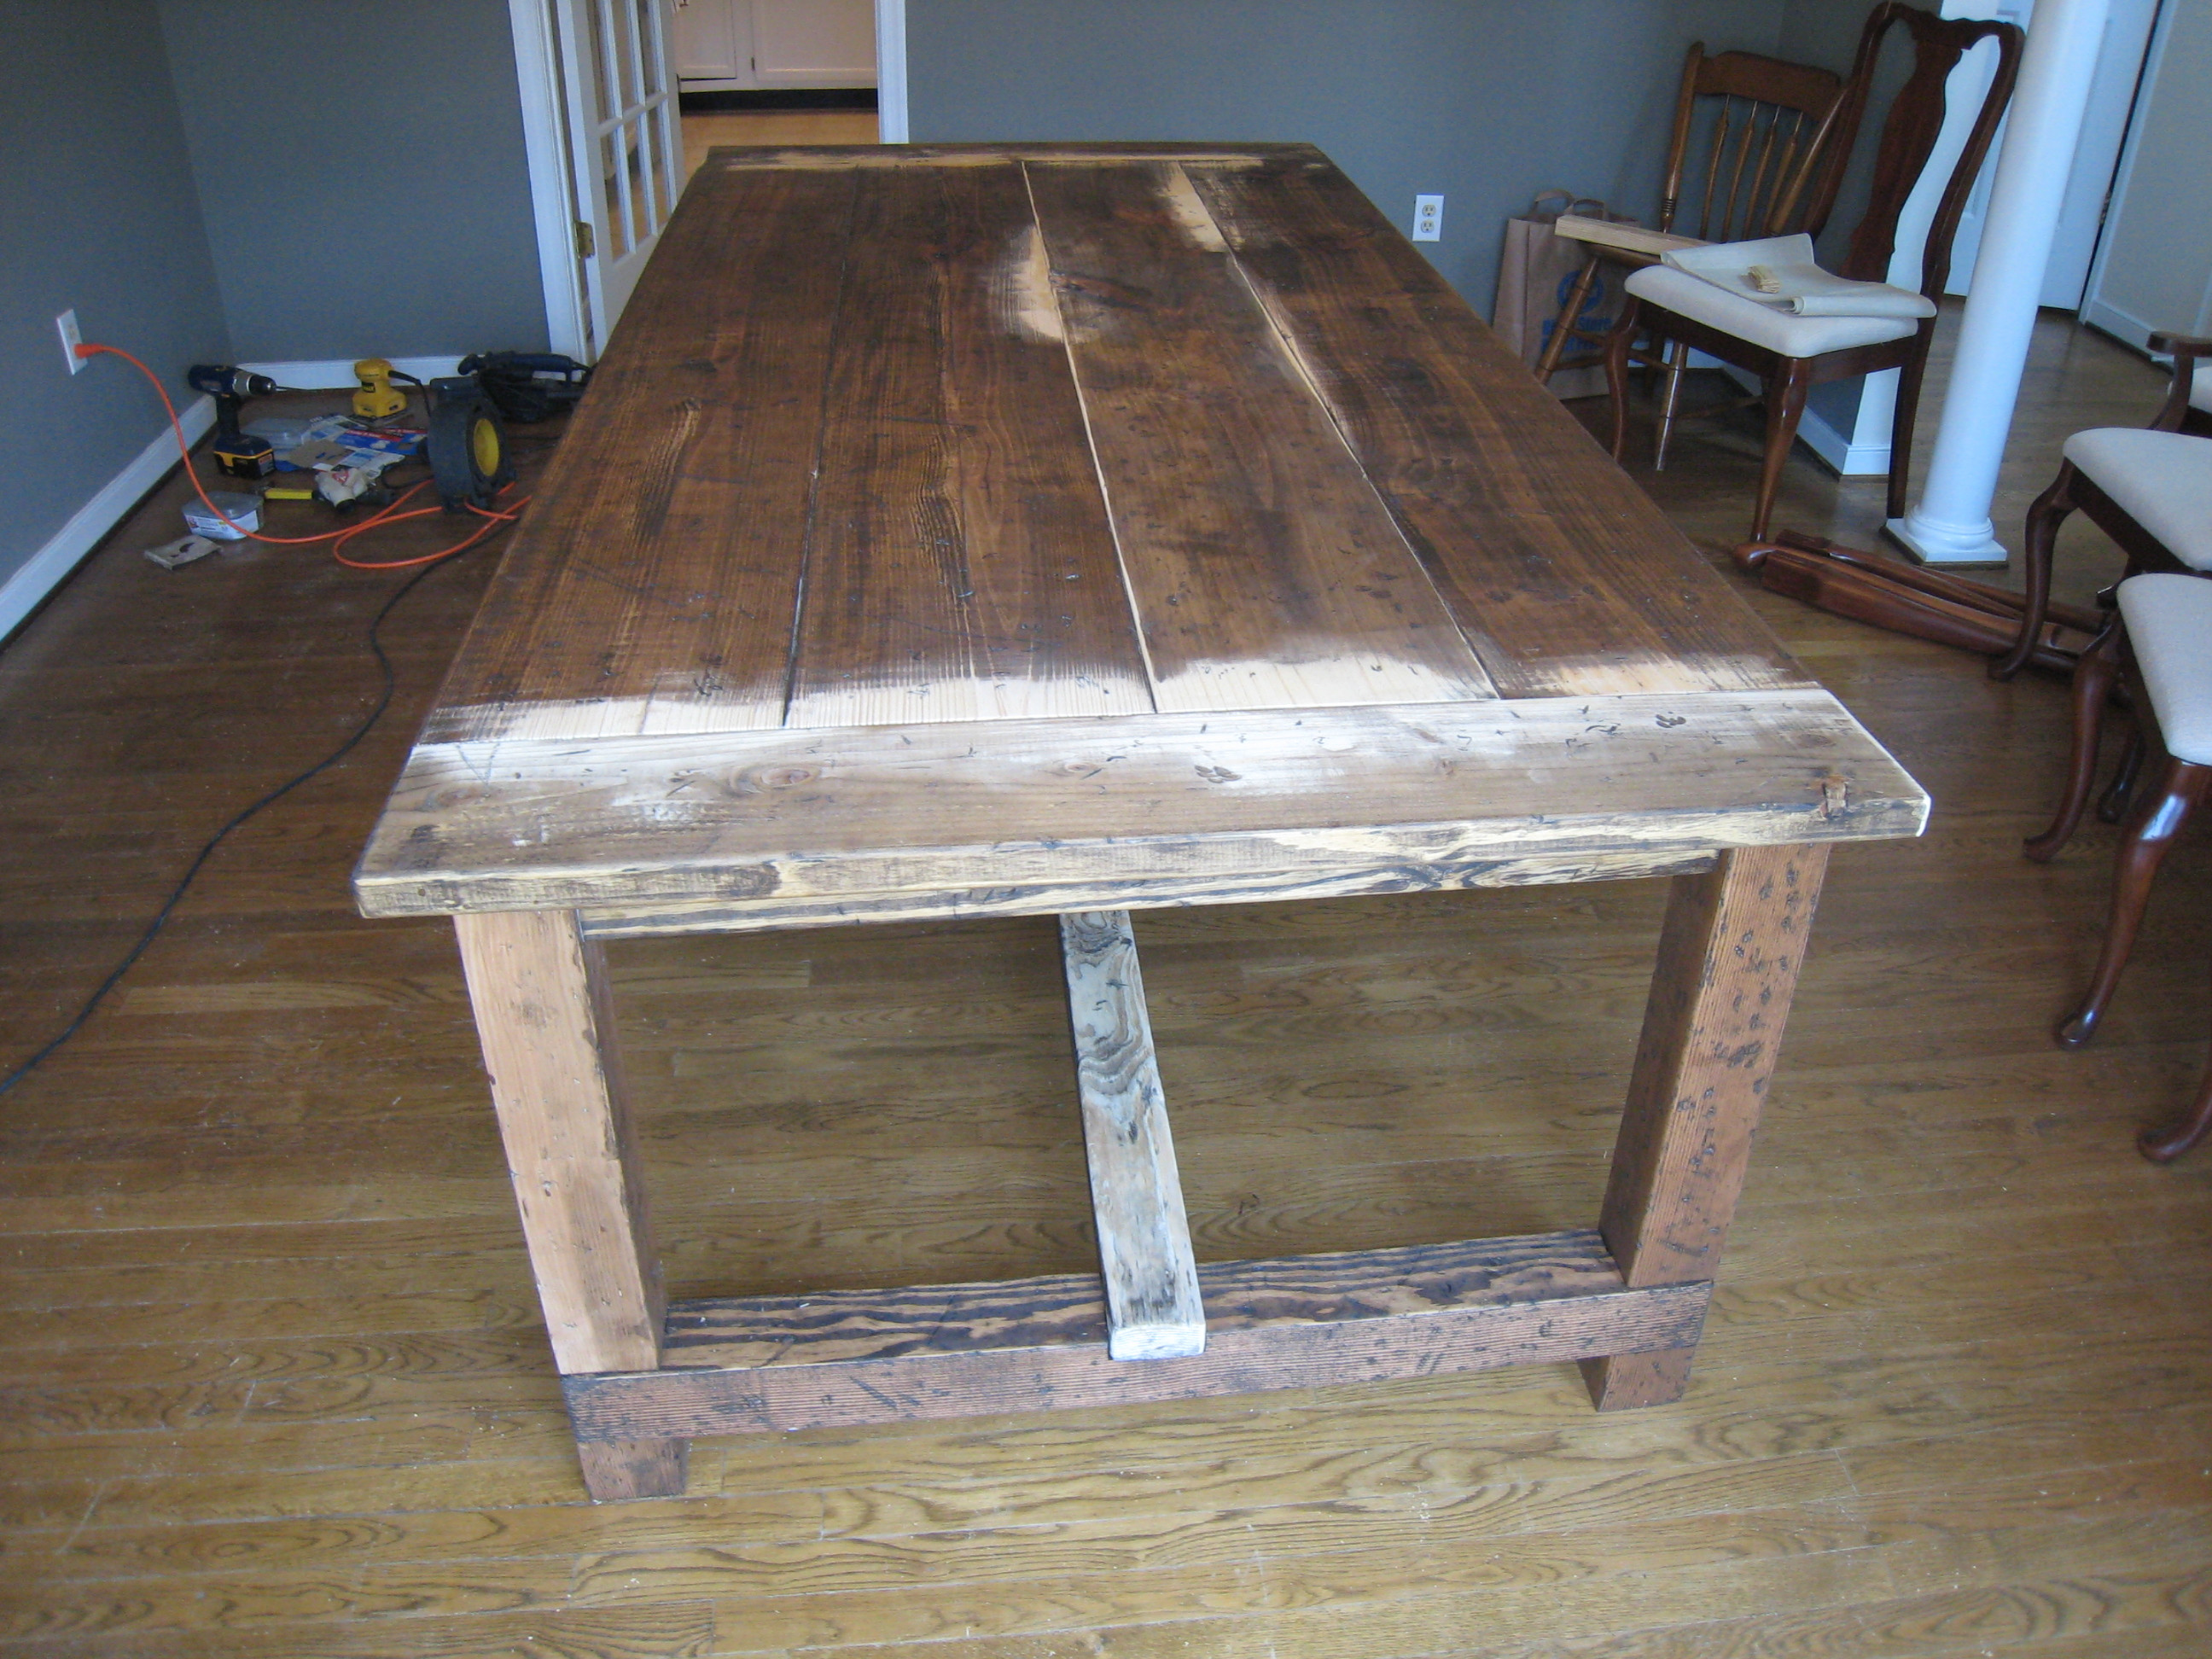 Best ideas about DIY Table Planners . Save or Pin Farmhouse Table Details Tommy & Ellie Now.